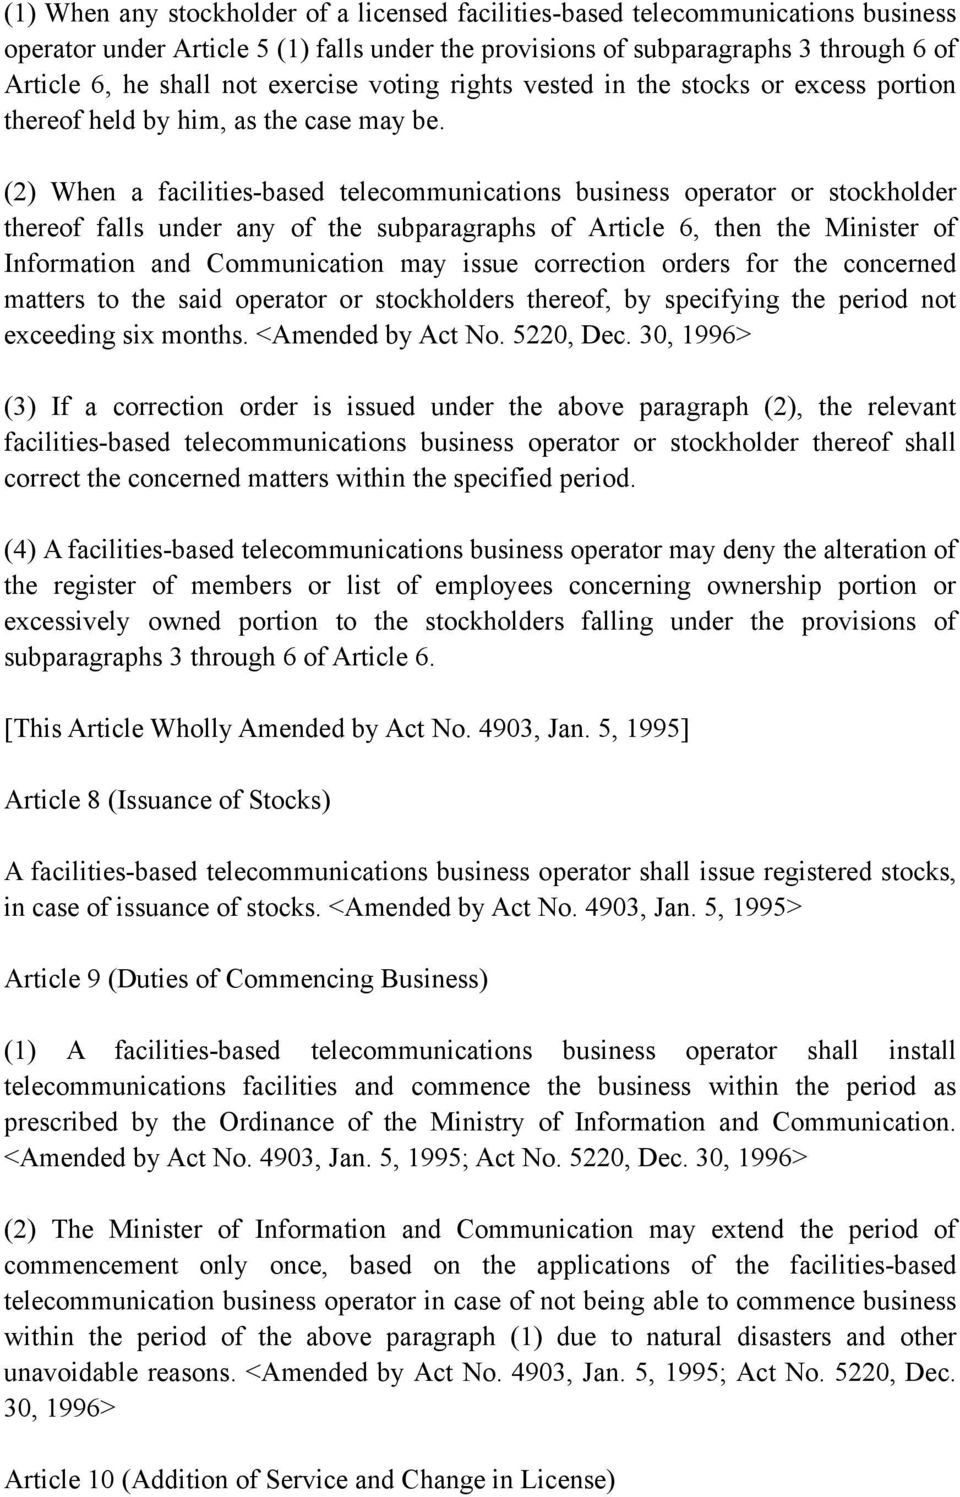 (2) When a facilities-based telecommunications business operator or stockholder thereof falls under any of the subparagraphs of Article 6, then the Minister of Information and Communication may issue